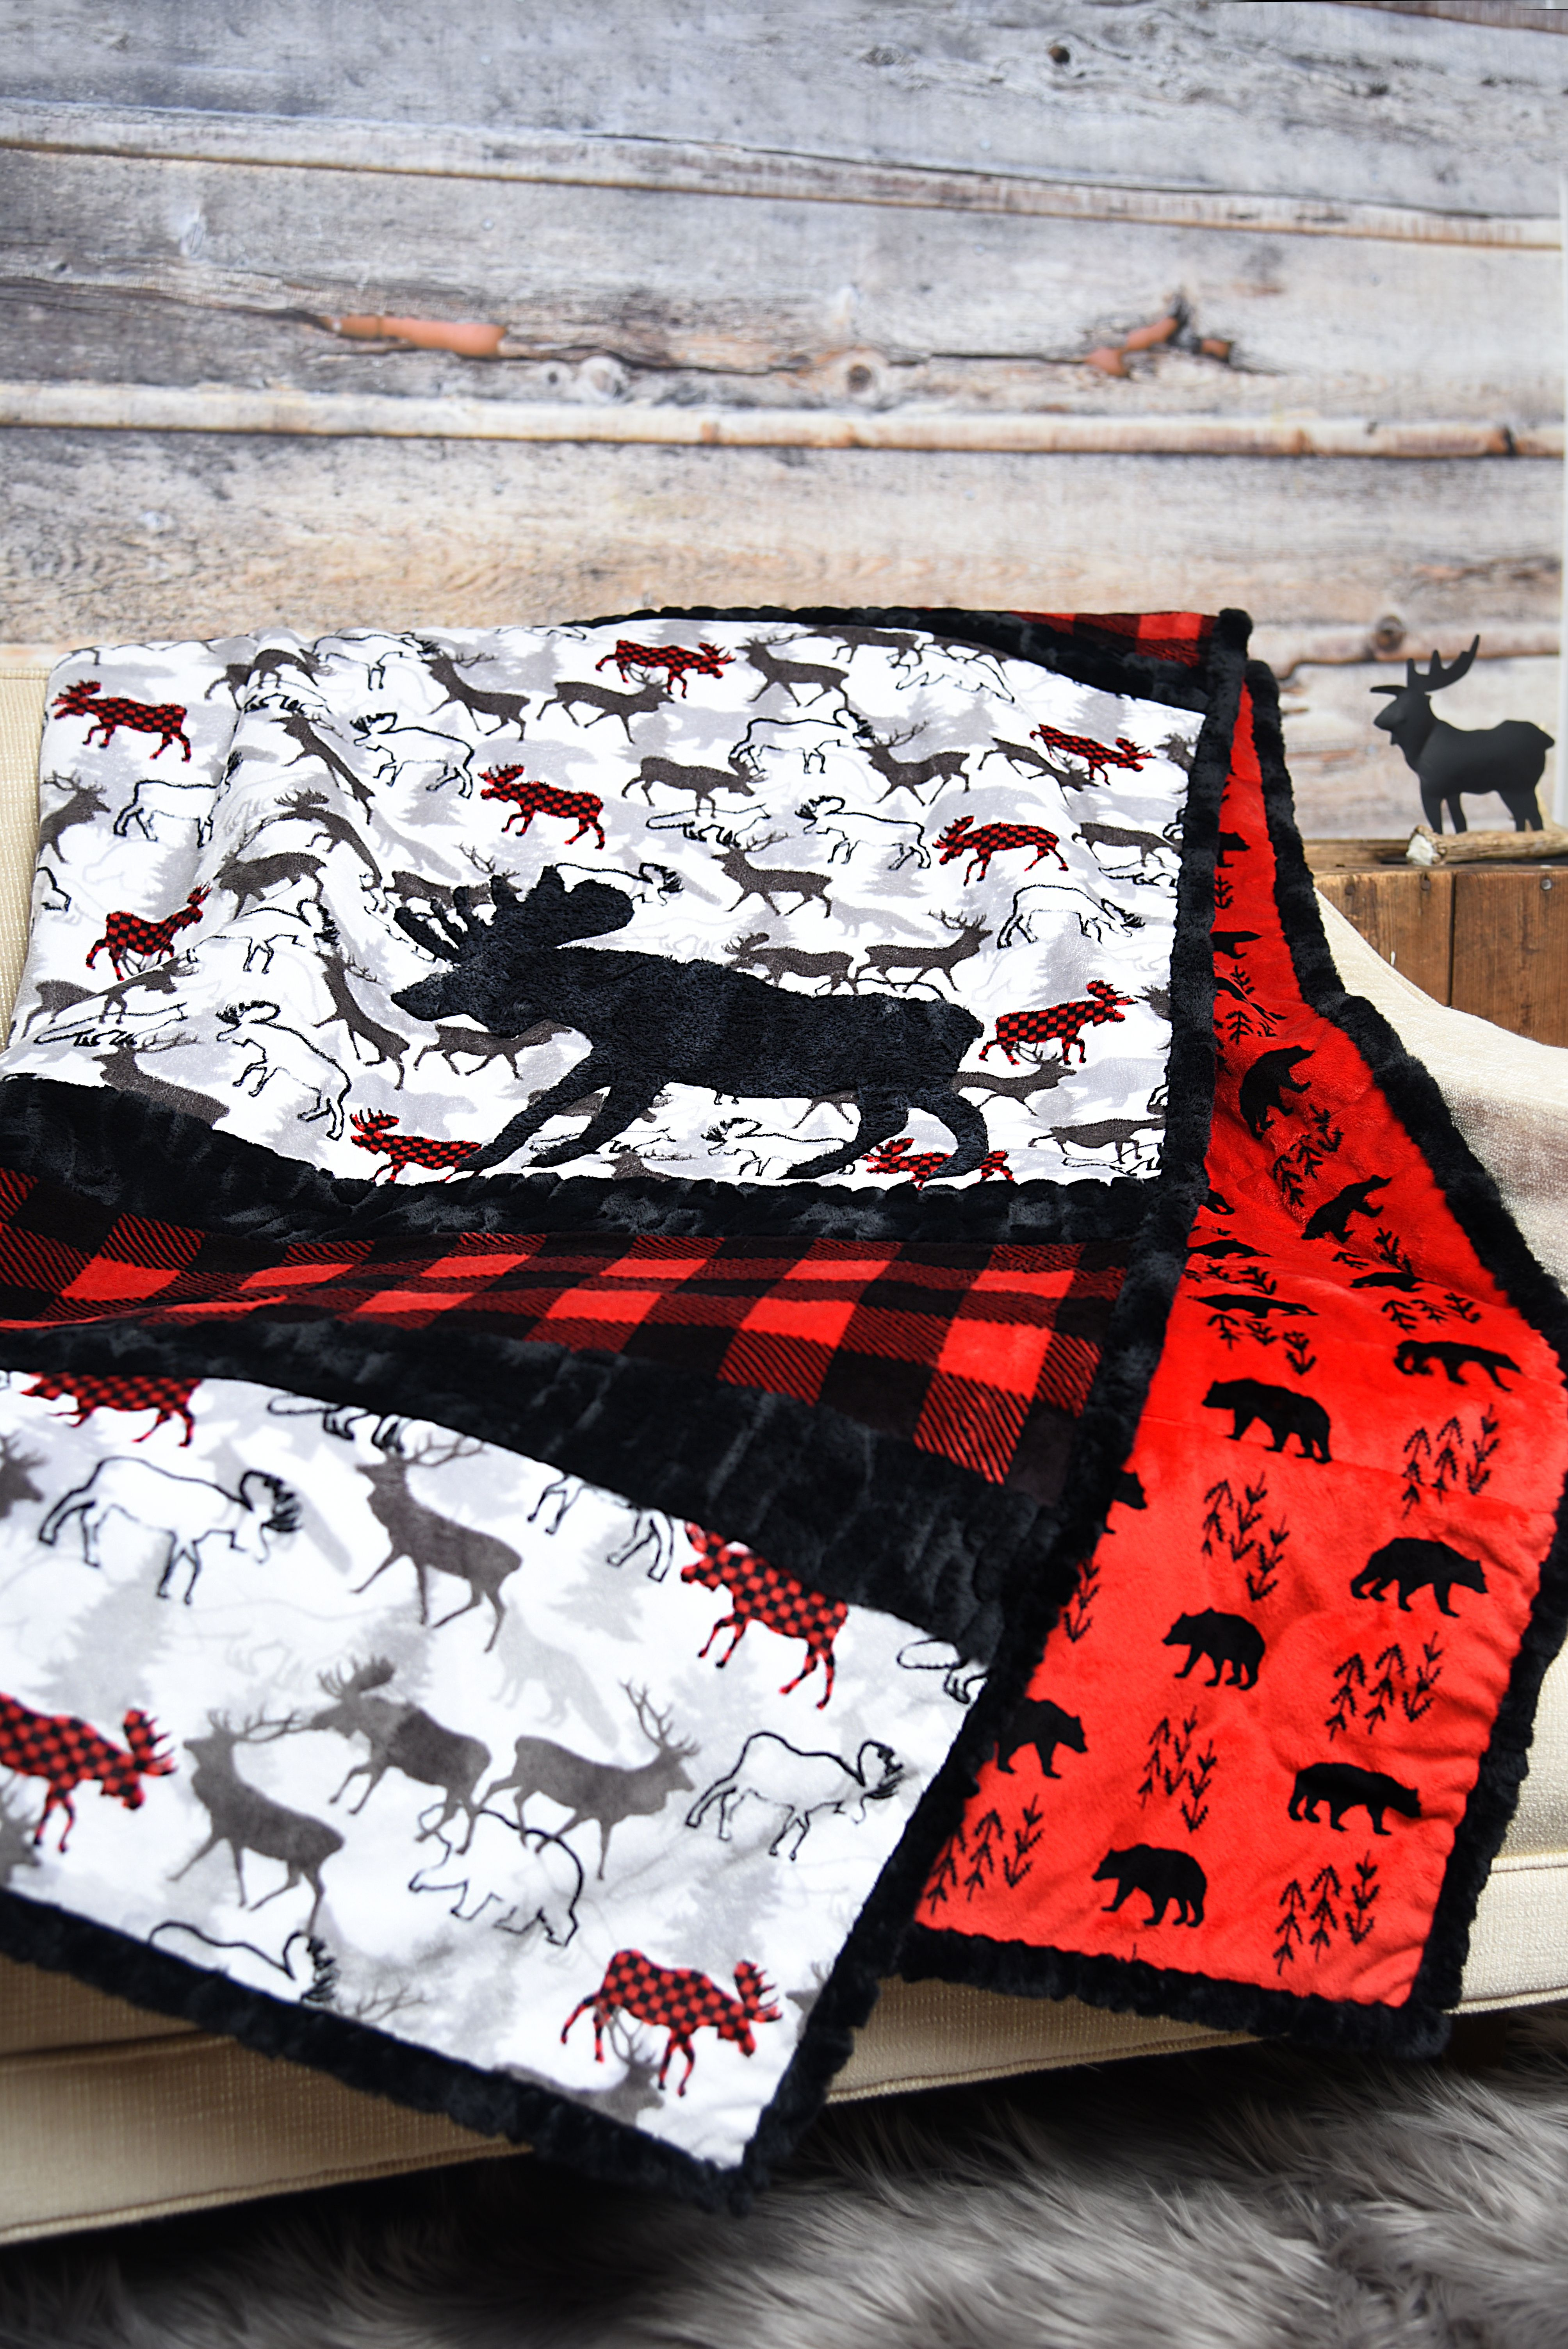 Sensational Strips Cuddle Kit A Moose D Minky Quilt Cuddling Wholesale Fabric Suppliers